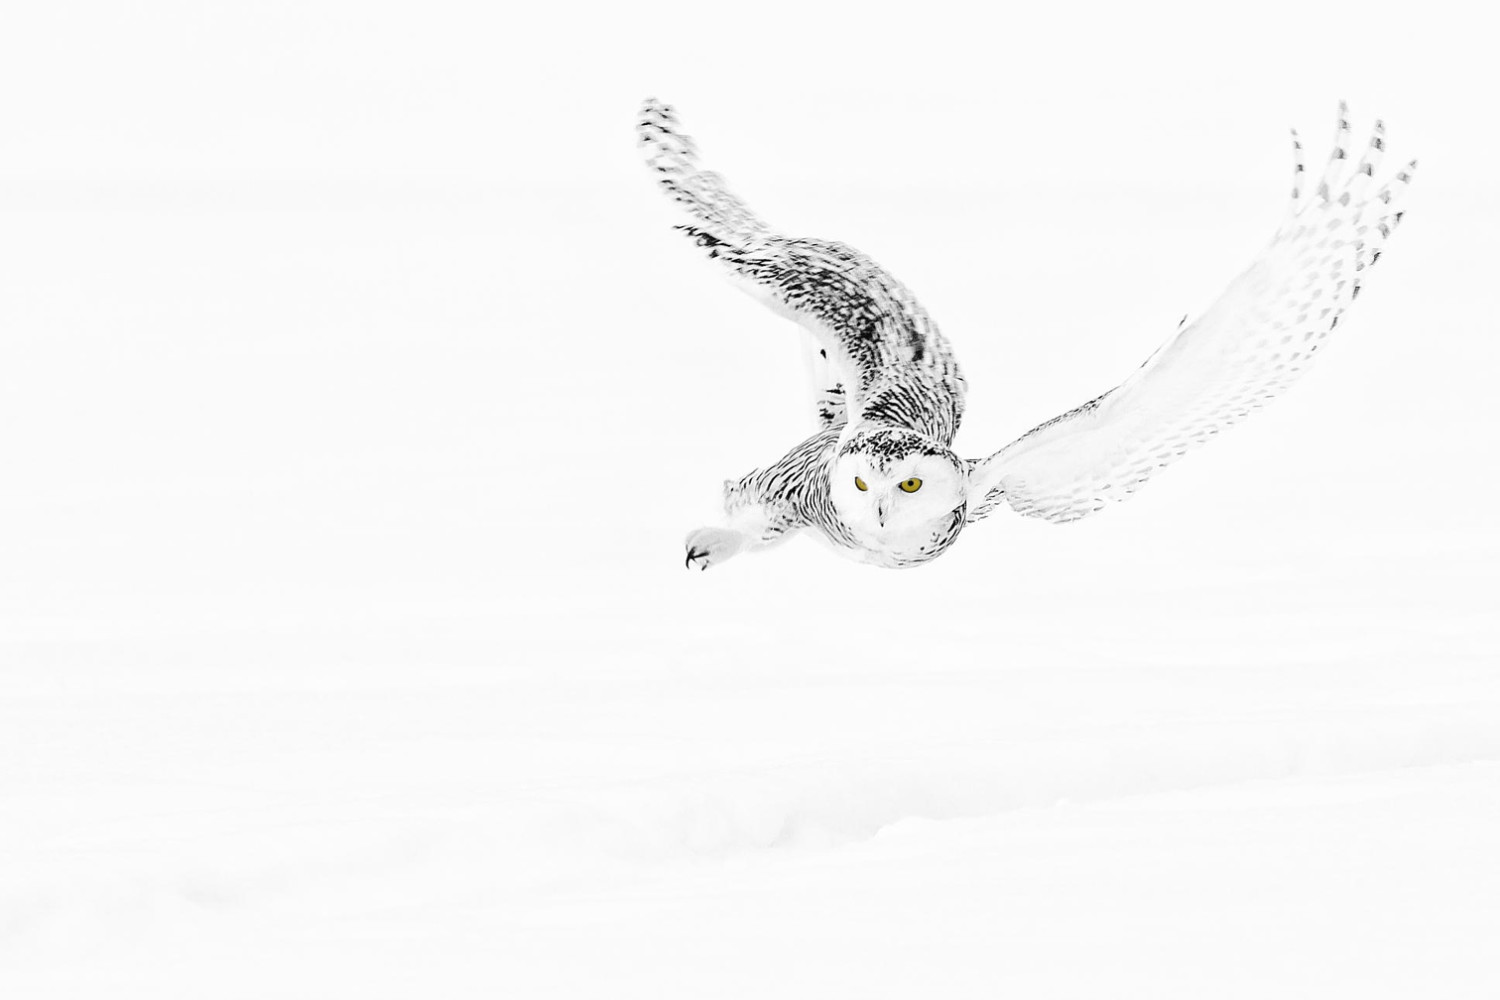 25 Majestic Photographs of Owls in the Snow